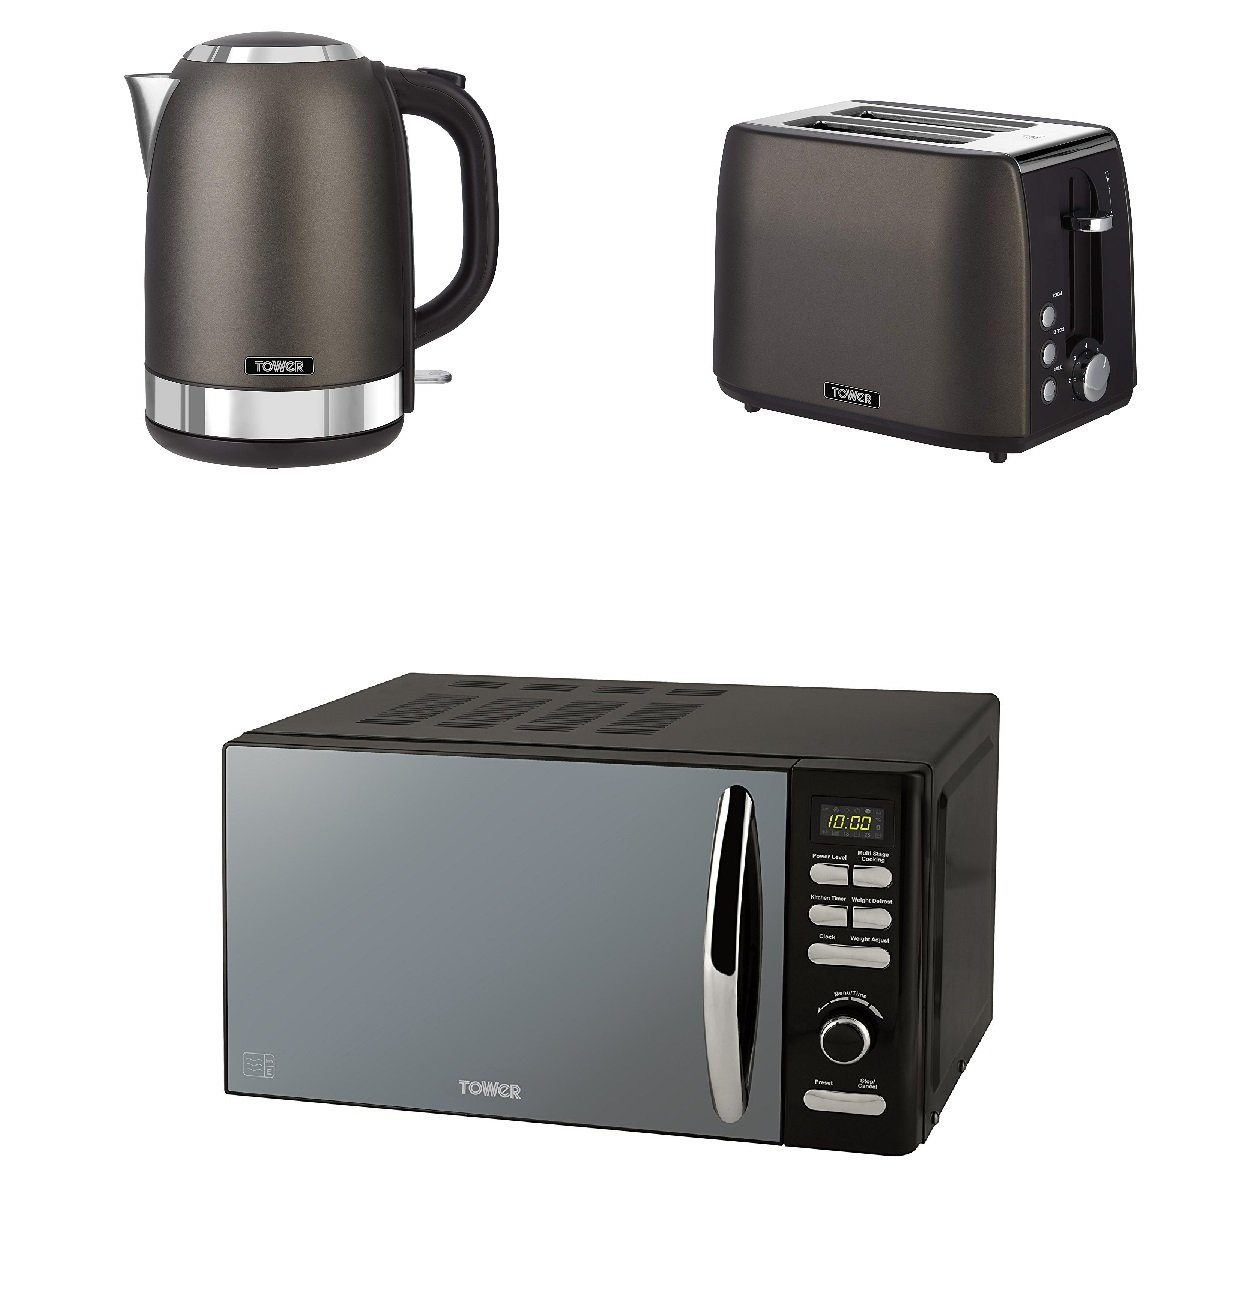 Black Titanium Kitchen Electrical Appliance Tower Set - Black Digital Solo 800 W, 20 L Microwave and a 1.7L S/S Jug Kettle and a 2 Slice Toaster T0wer